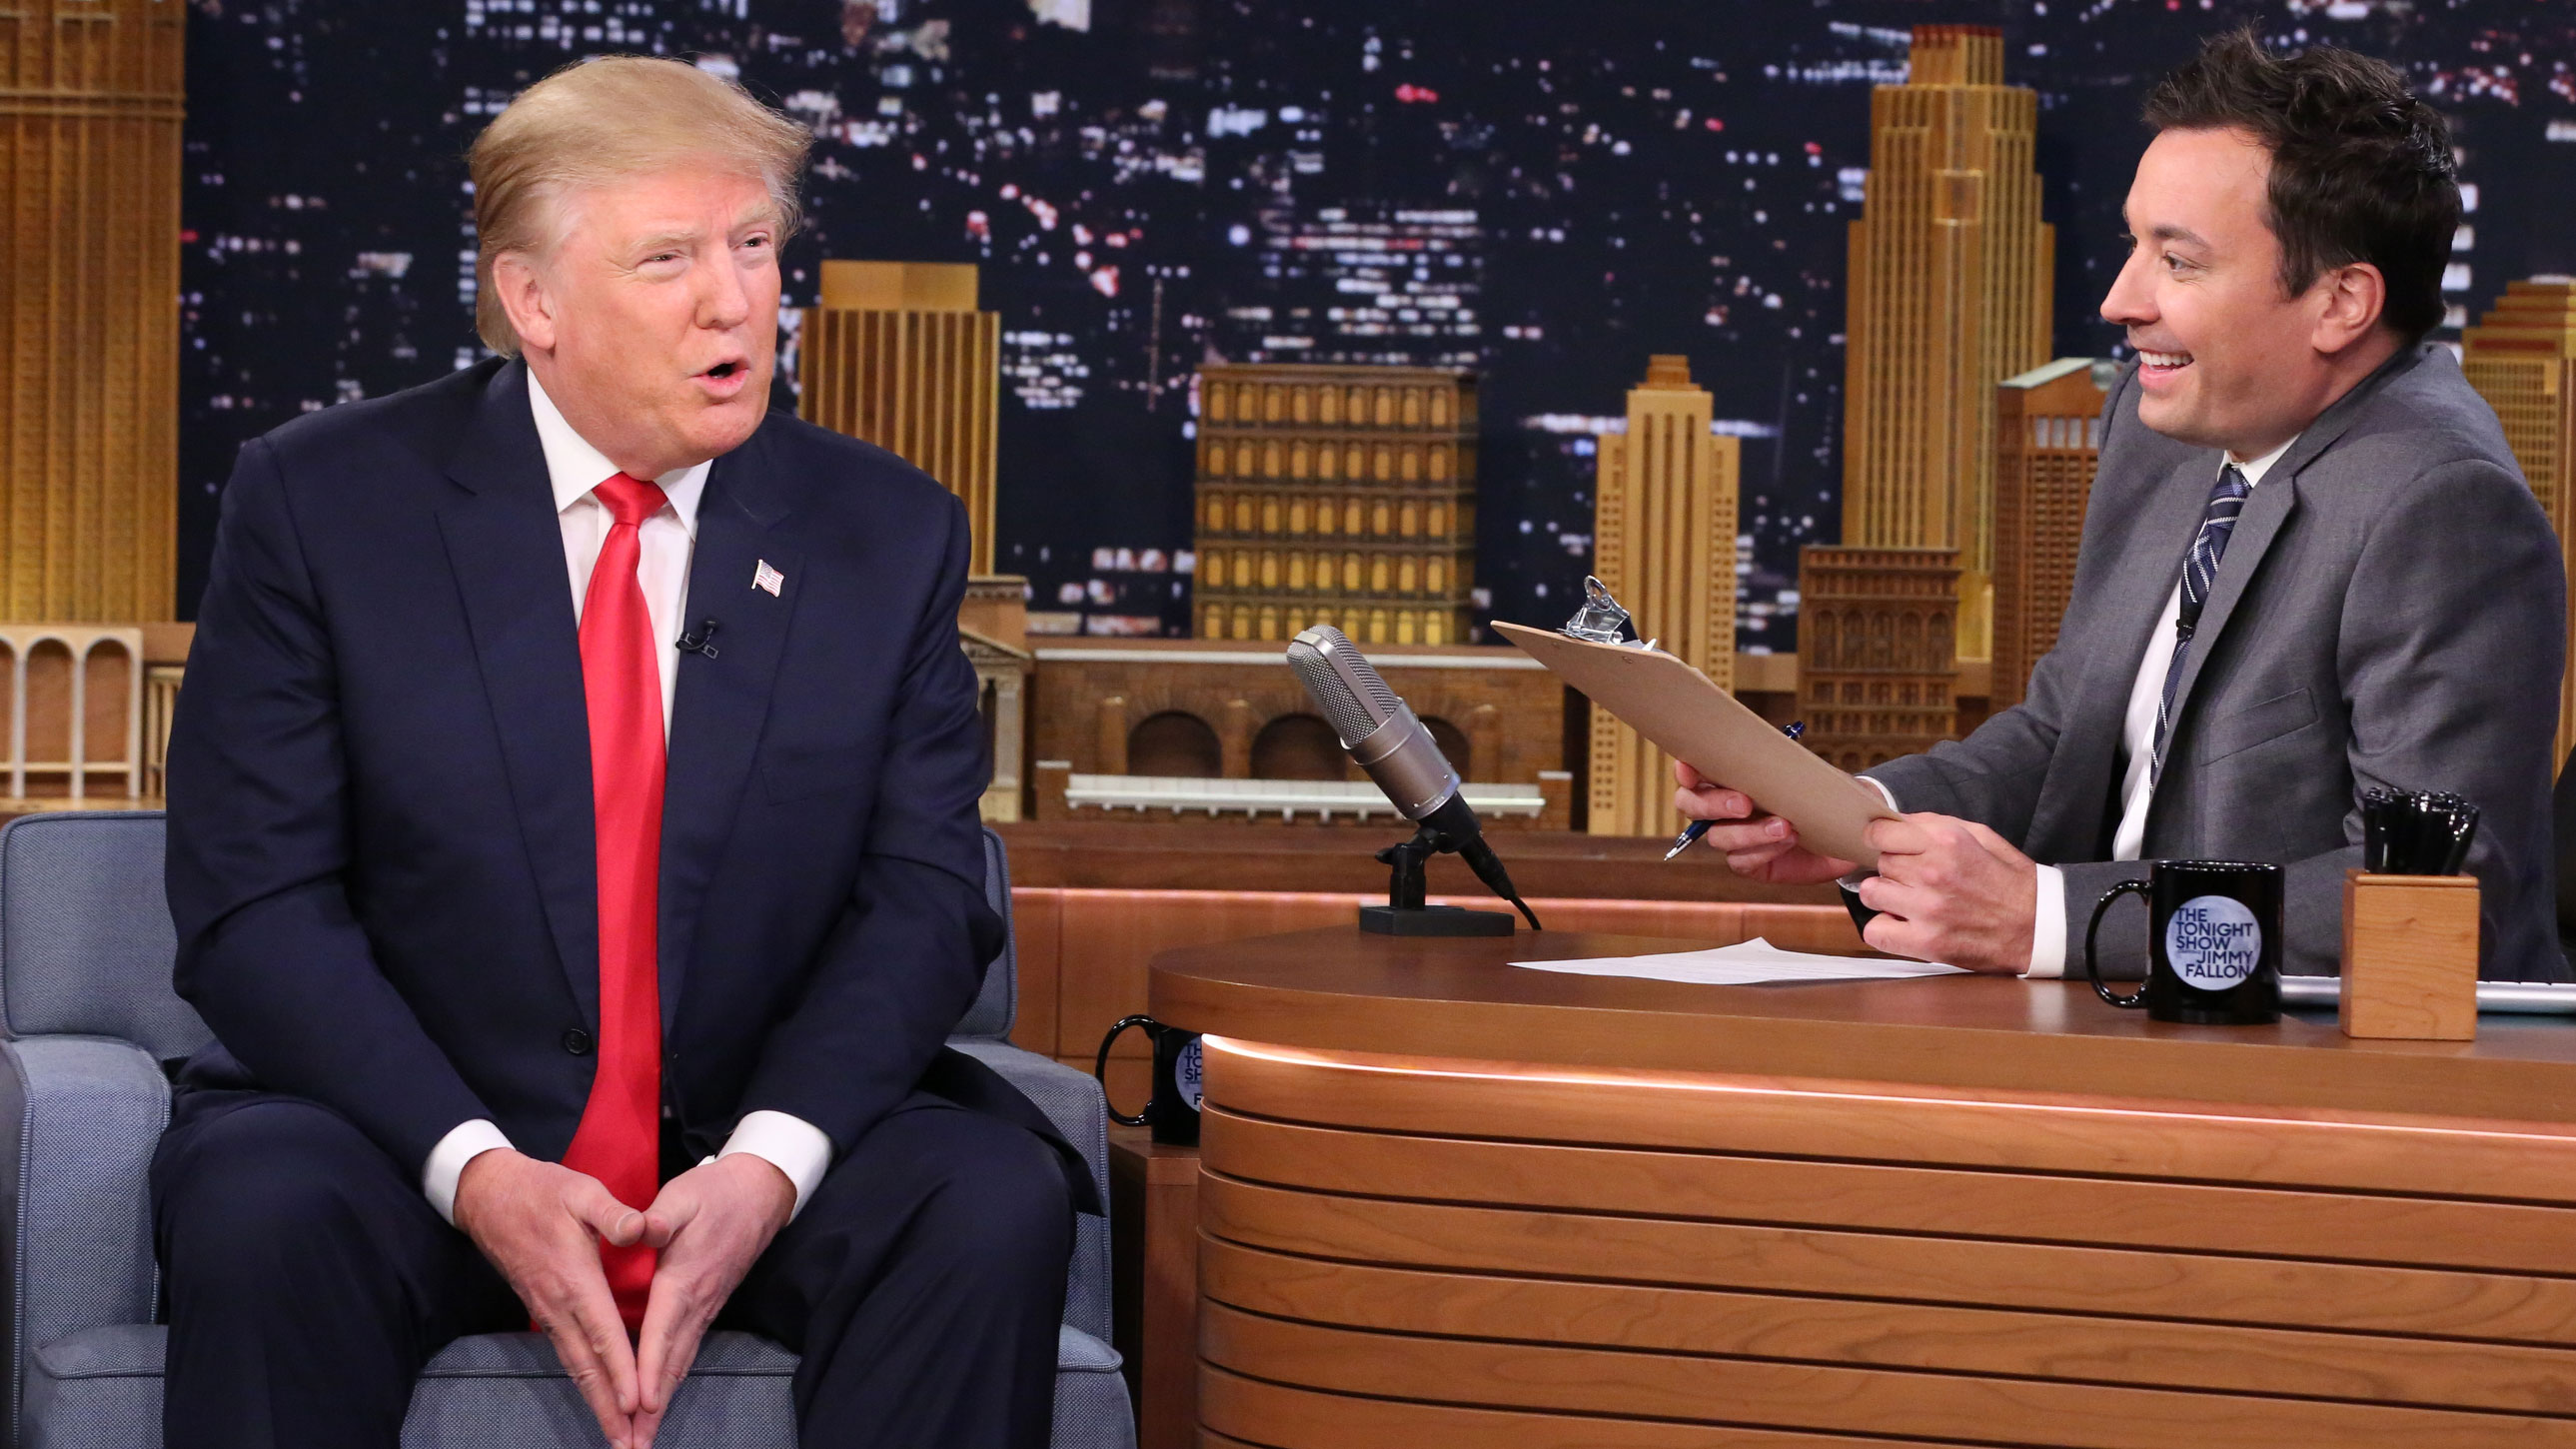 Mock Job Interview For President With Donald Trump The